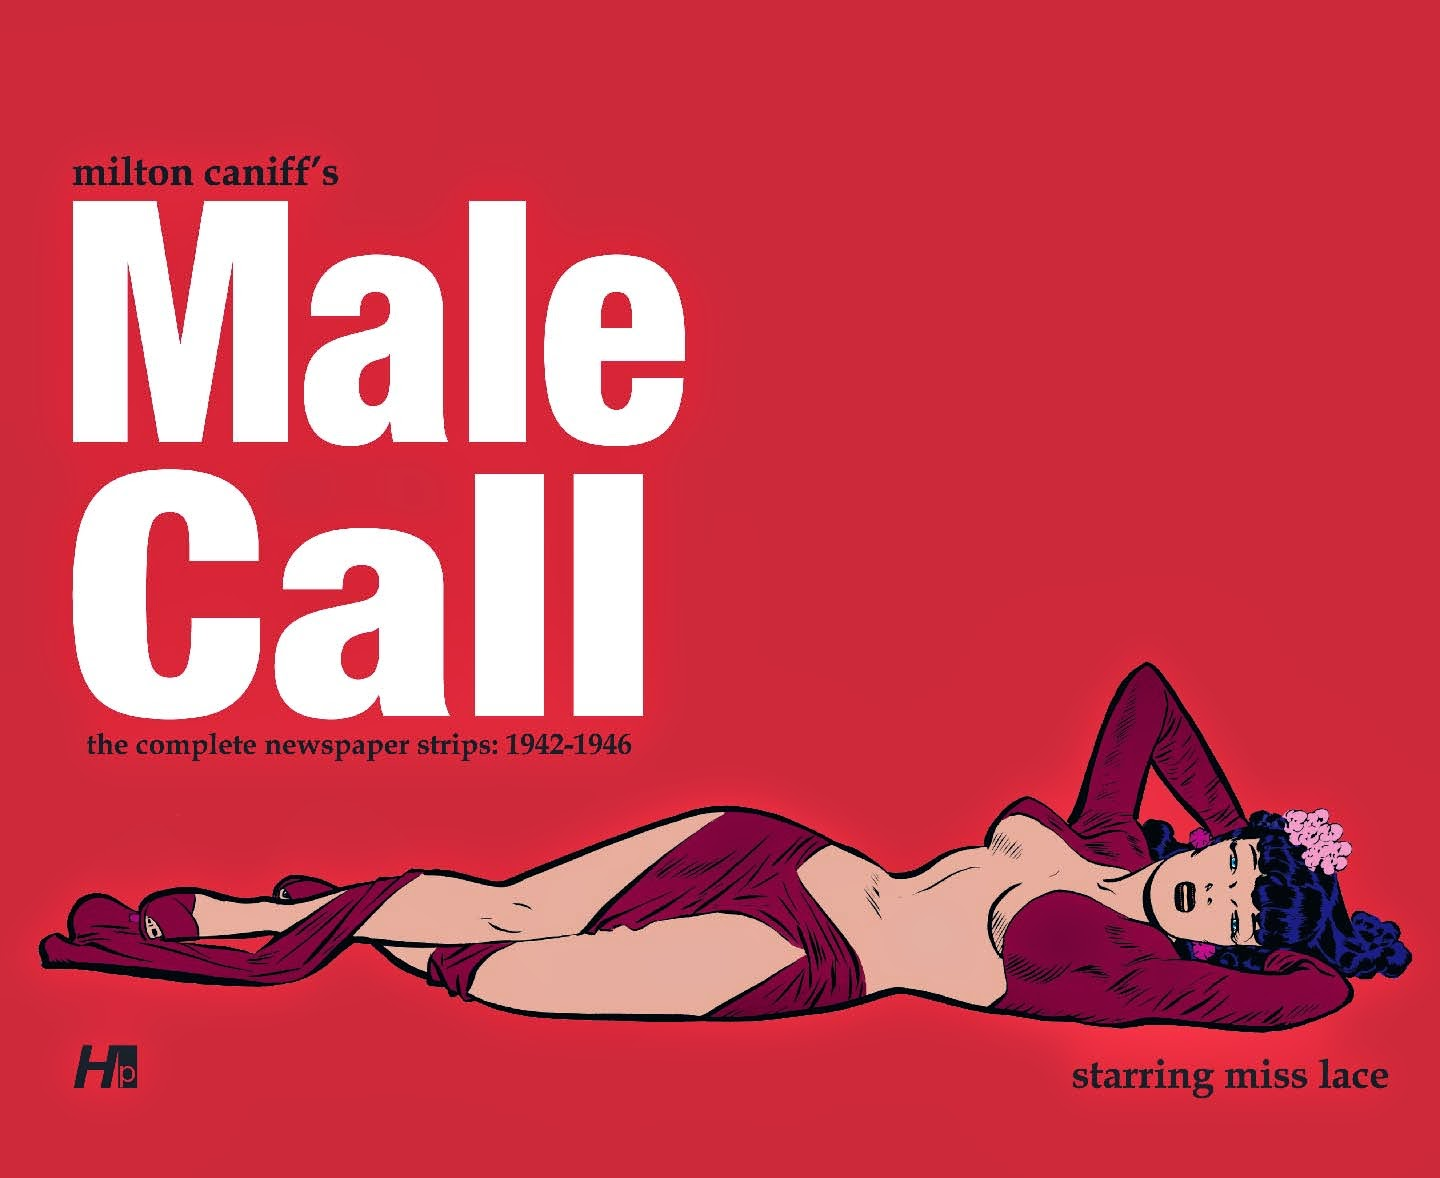 Photo of Male Call book- with Miss Lace lying across cover seductively